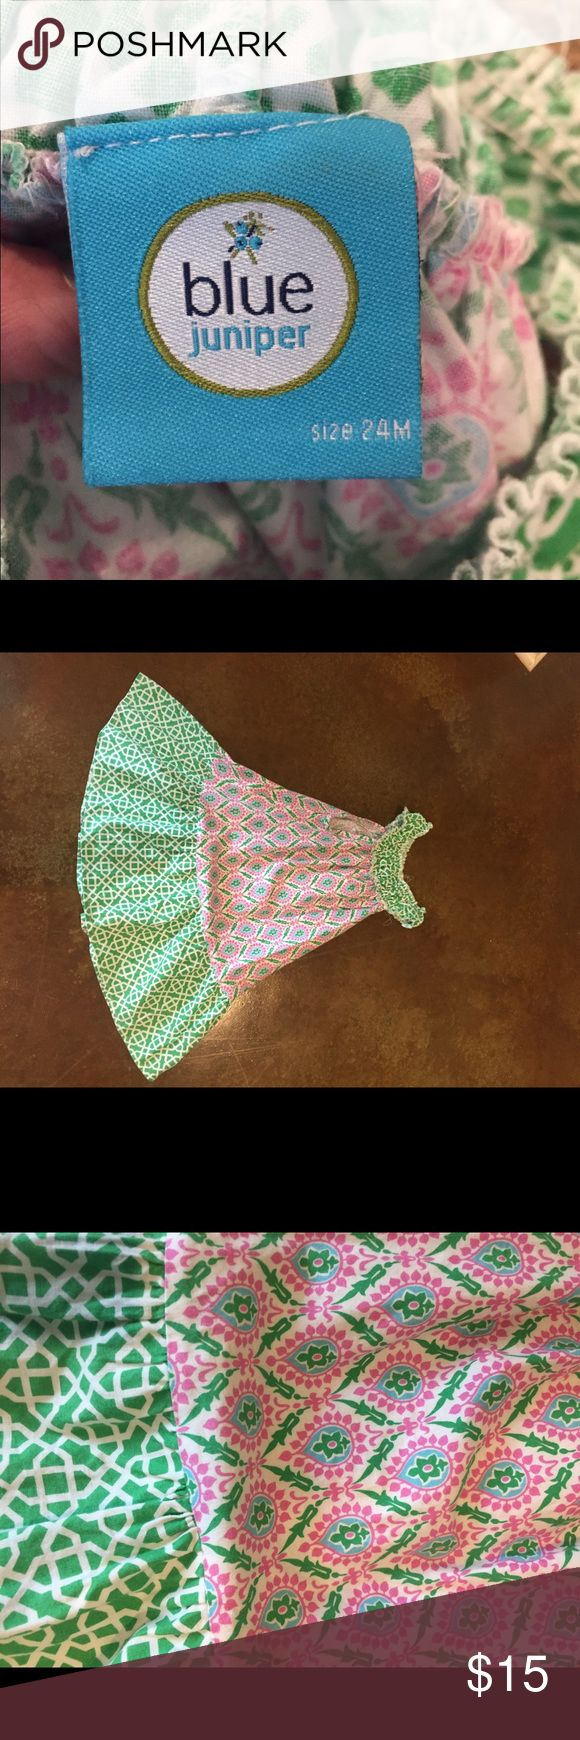 Strapless dress green and pink Pink and green dress blue juniper Dresses Casual